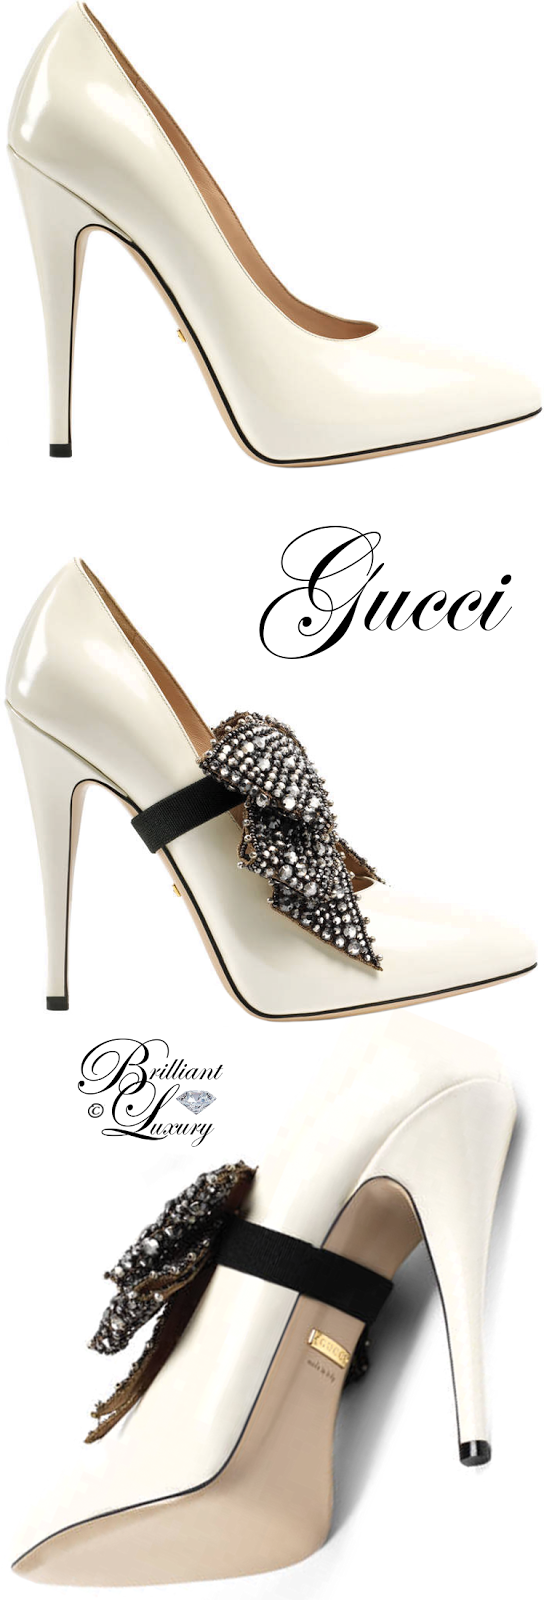 Brilliant Luxury ♦ Gucci Leather Pump With Crystal Bow